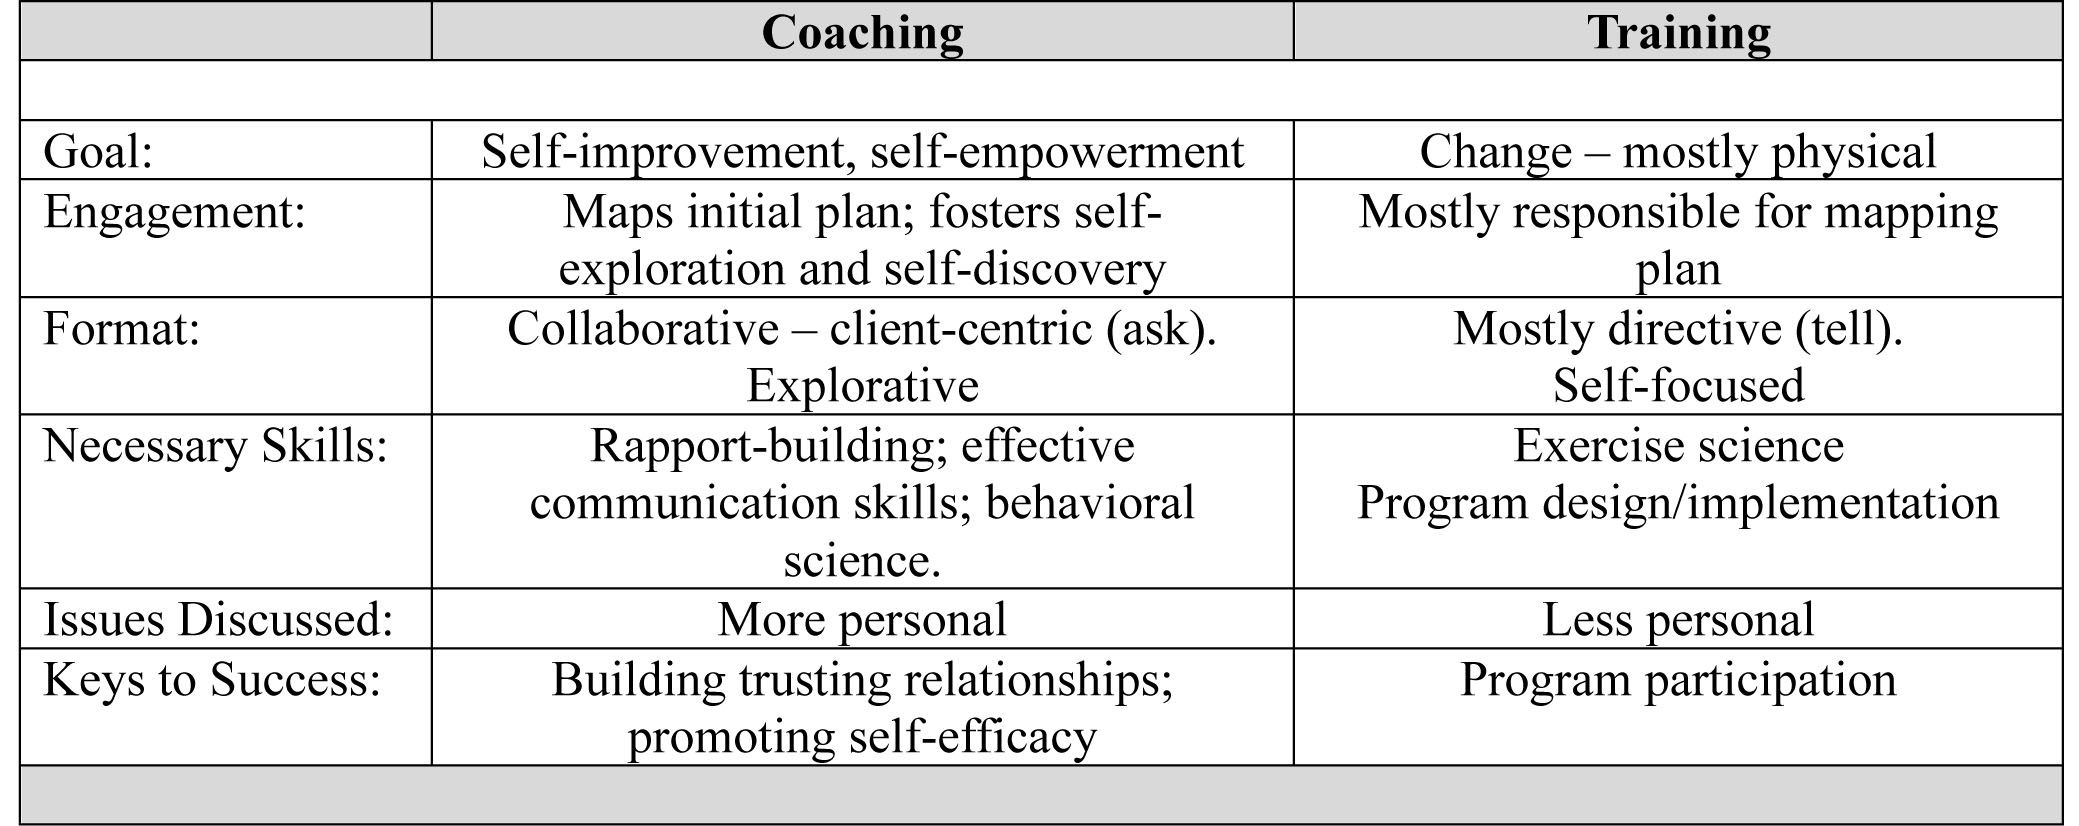 Key differentiators between coaching and training